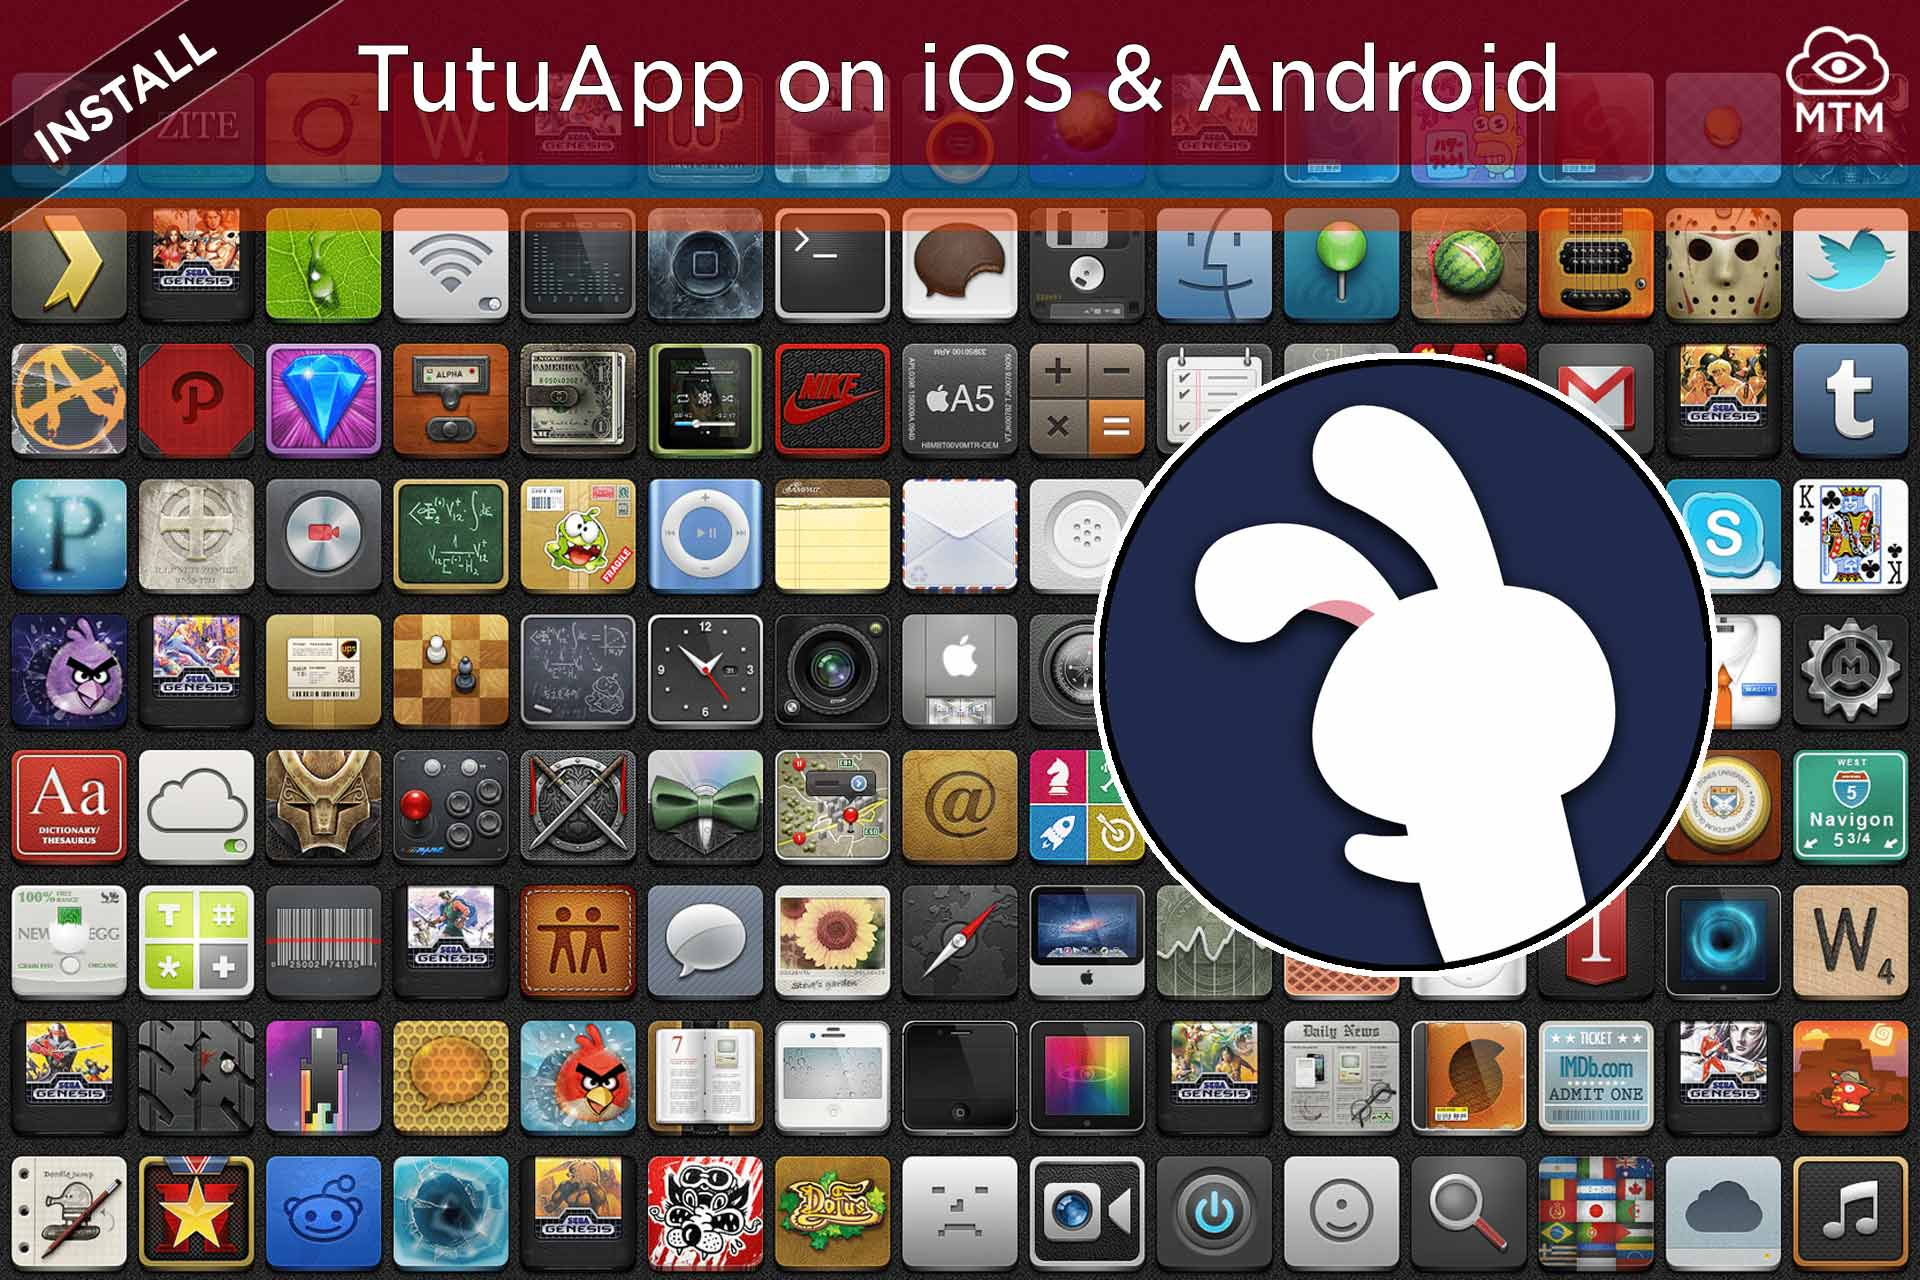 tutuapp lite download slow